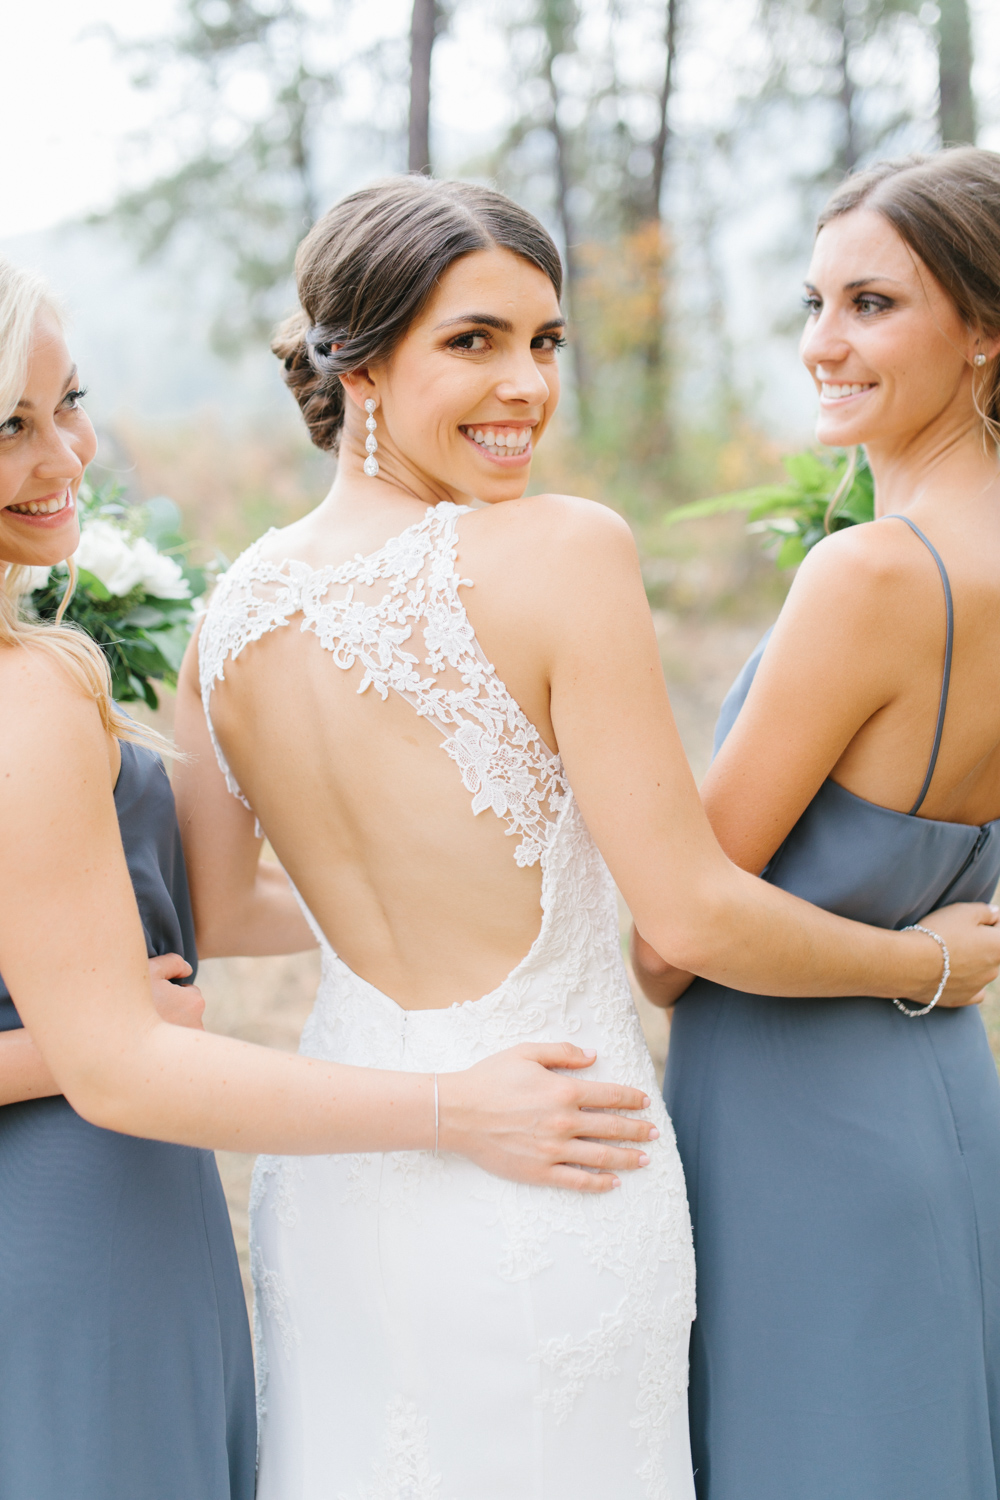 Grey and White Wedding in the Mountains of Leavenworth, Washington | Sleeping Lady | Classic and Timeless Wedding | VSCO | Bride with Bridesmaids | Grey Bridesmaids Dresses.jpg-2244.jpg